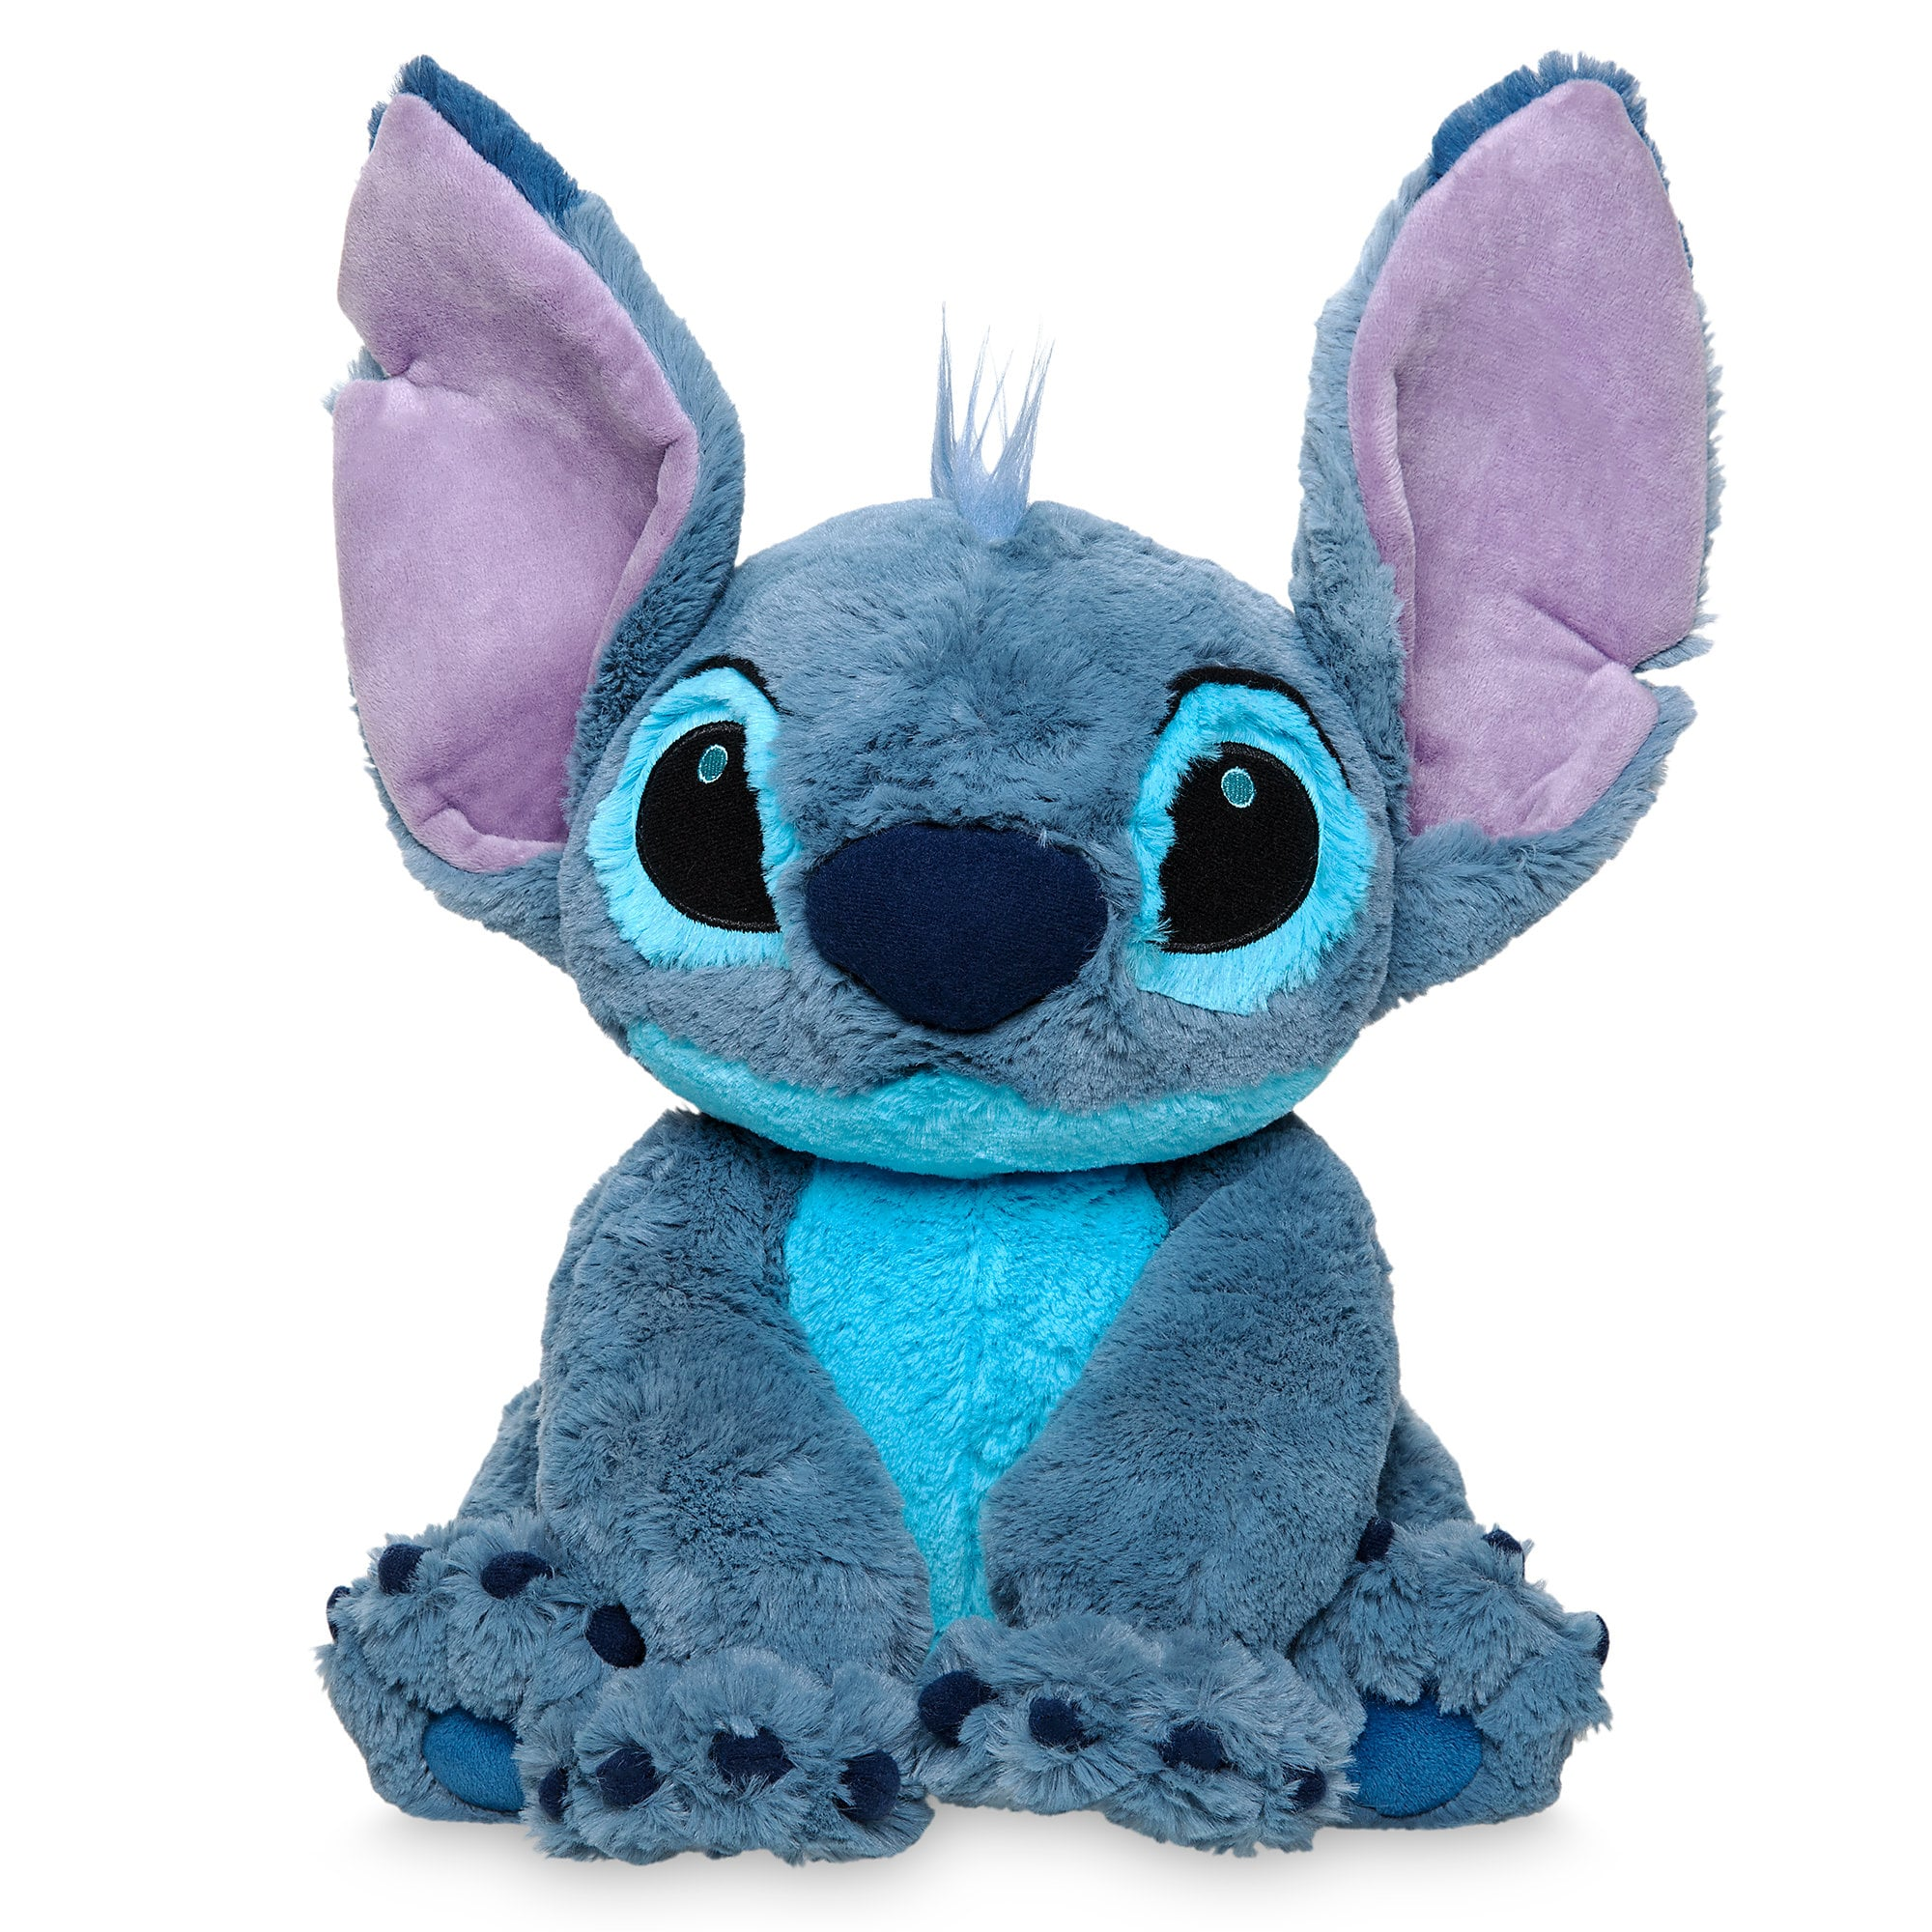 Pictures of stitch